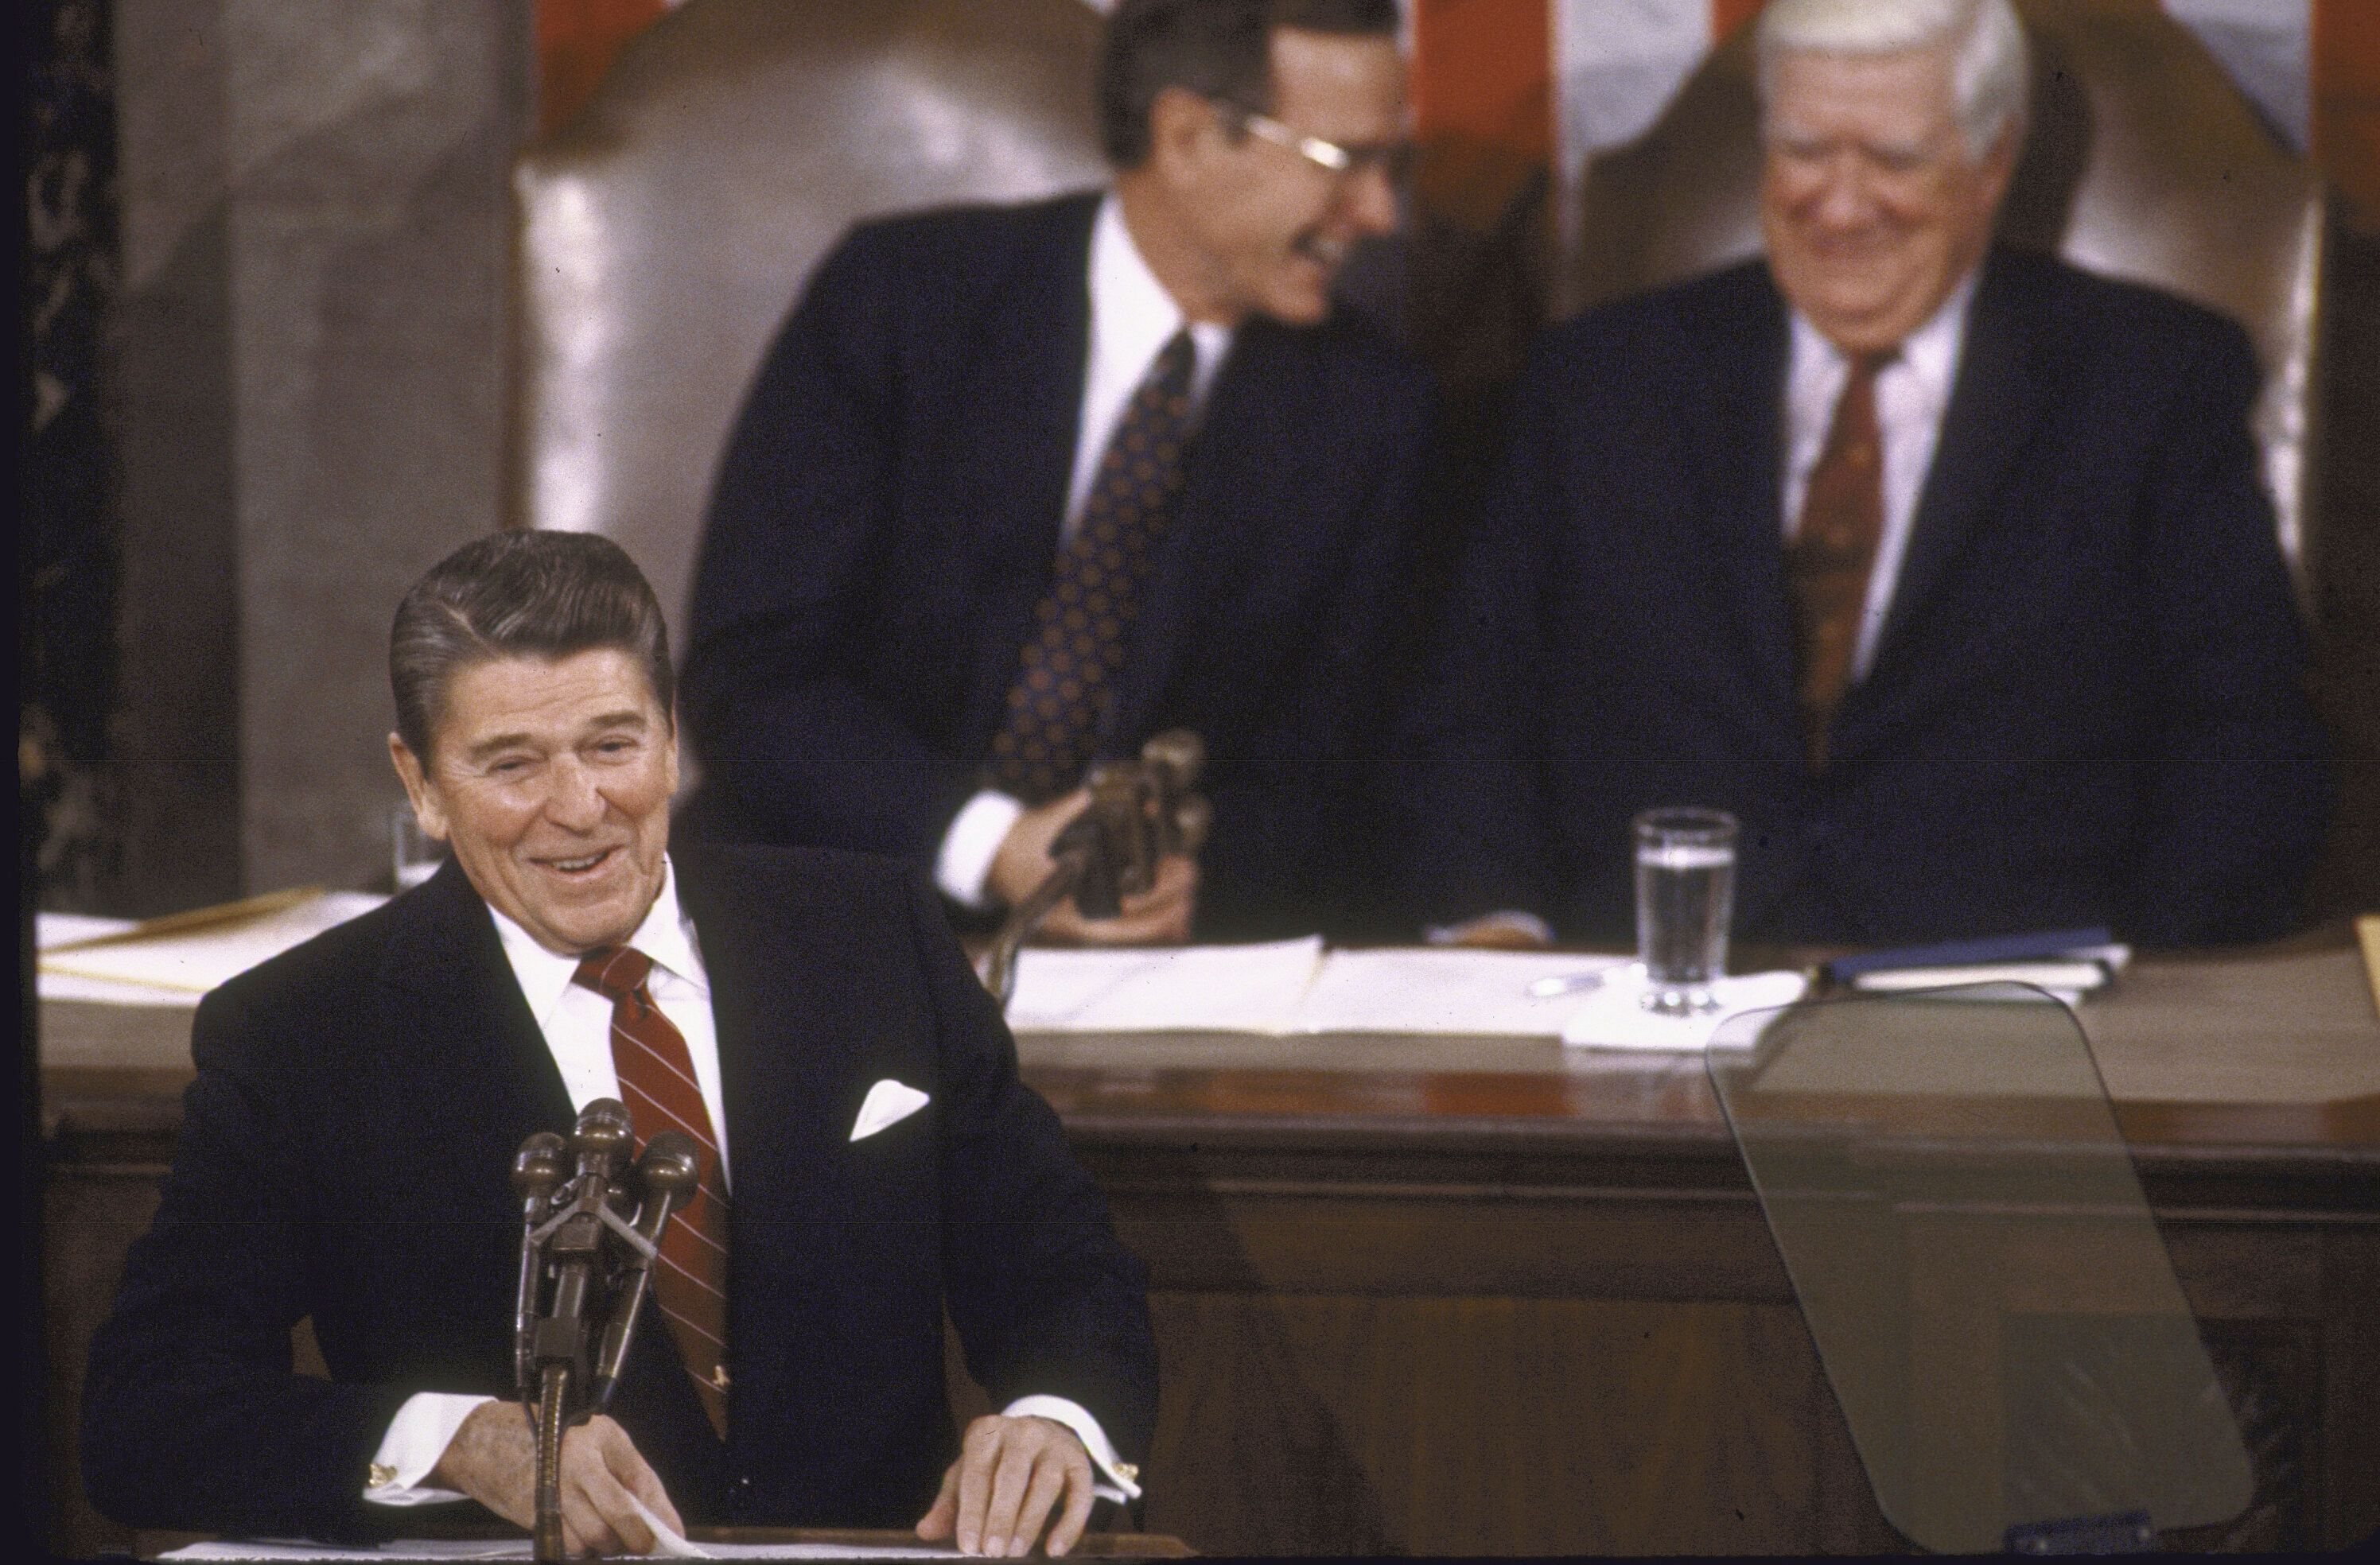 """President Ronald Reagan told Congress that his 1981 budget reconciliation plan to cut taxes and spending would """"put the natio"""